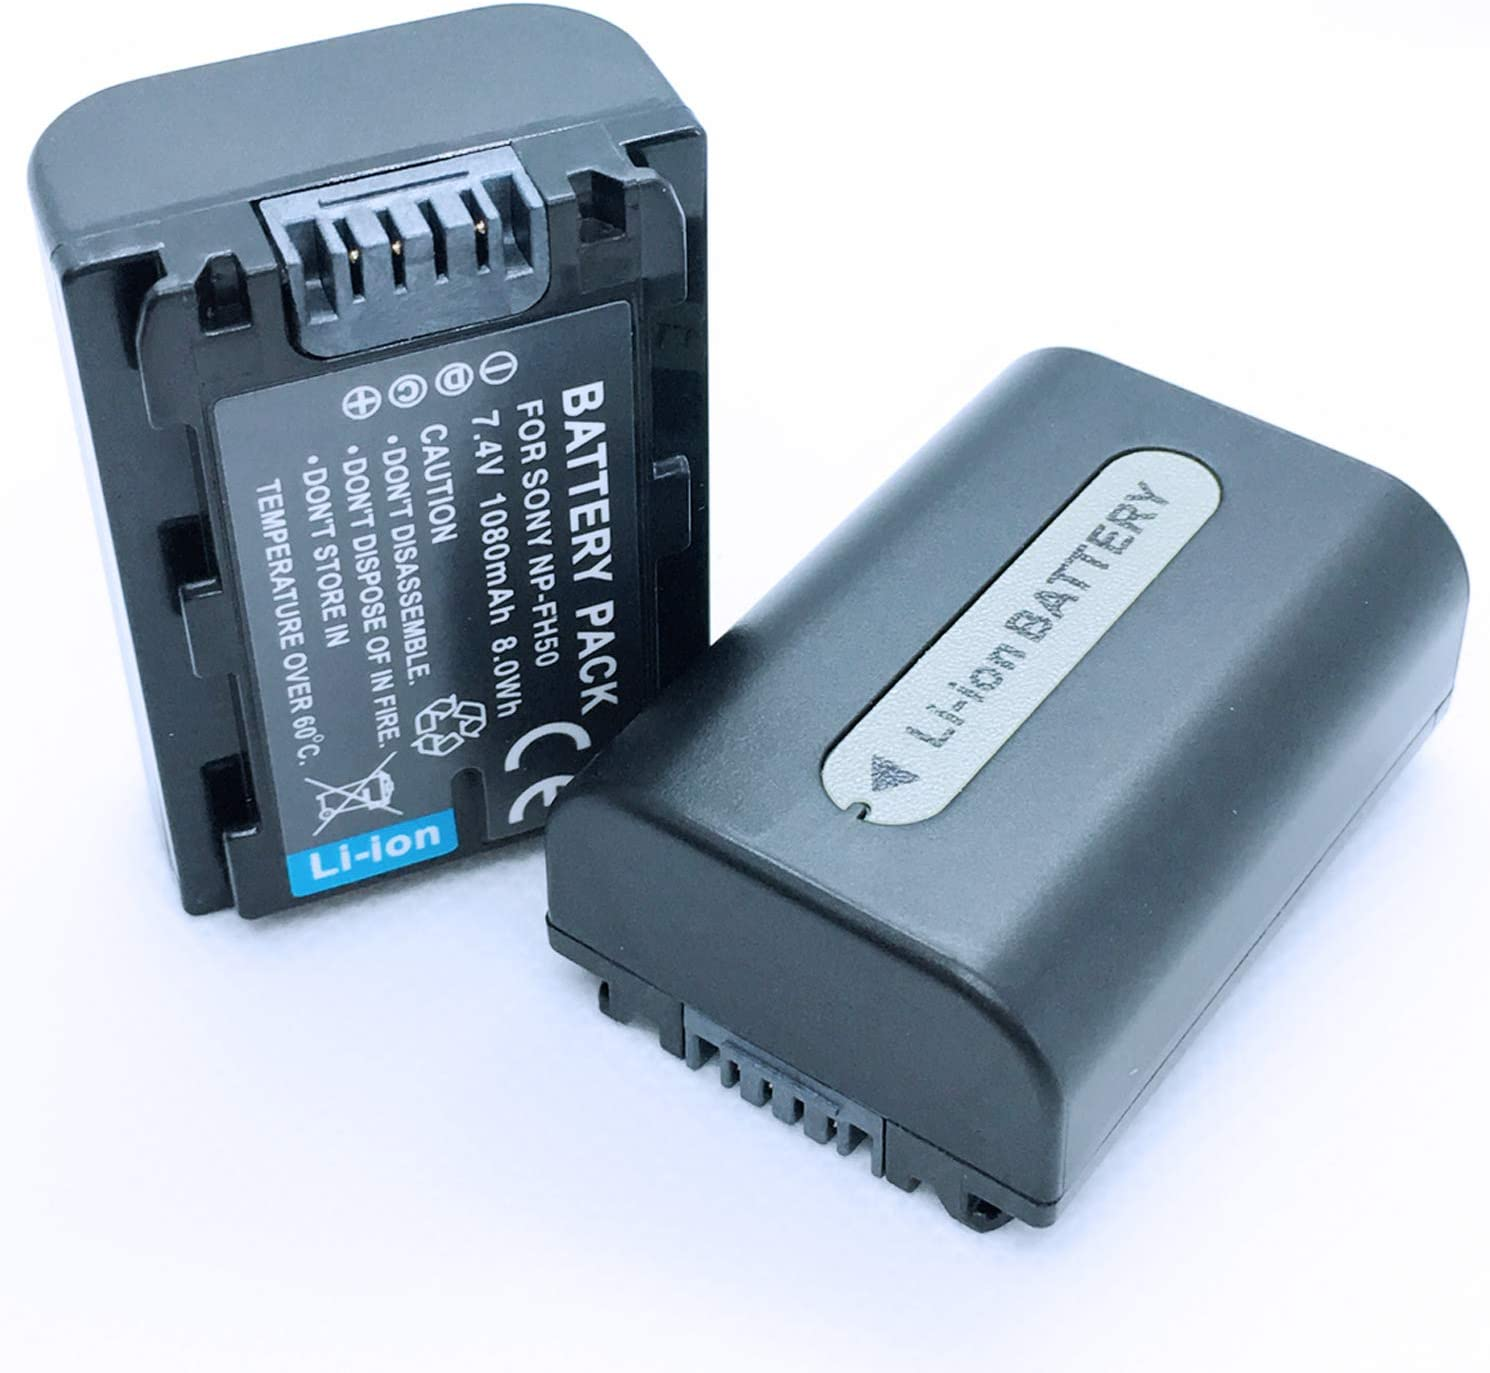 HDR-UX7E Handycam Camcorder HDR-UX5E Portable USB Battery Charger for Sony HDR-UX5 HDR-UX7